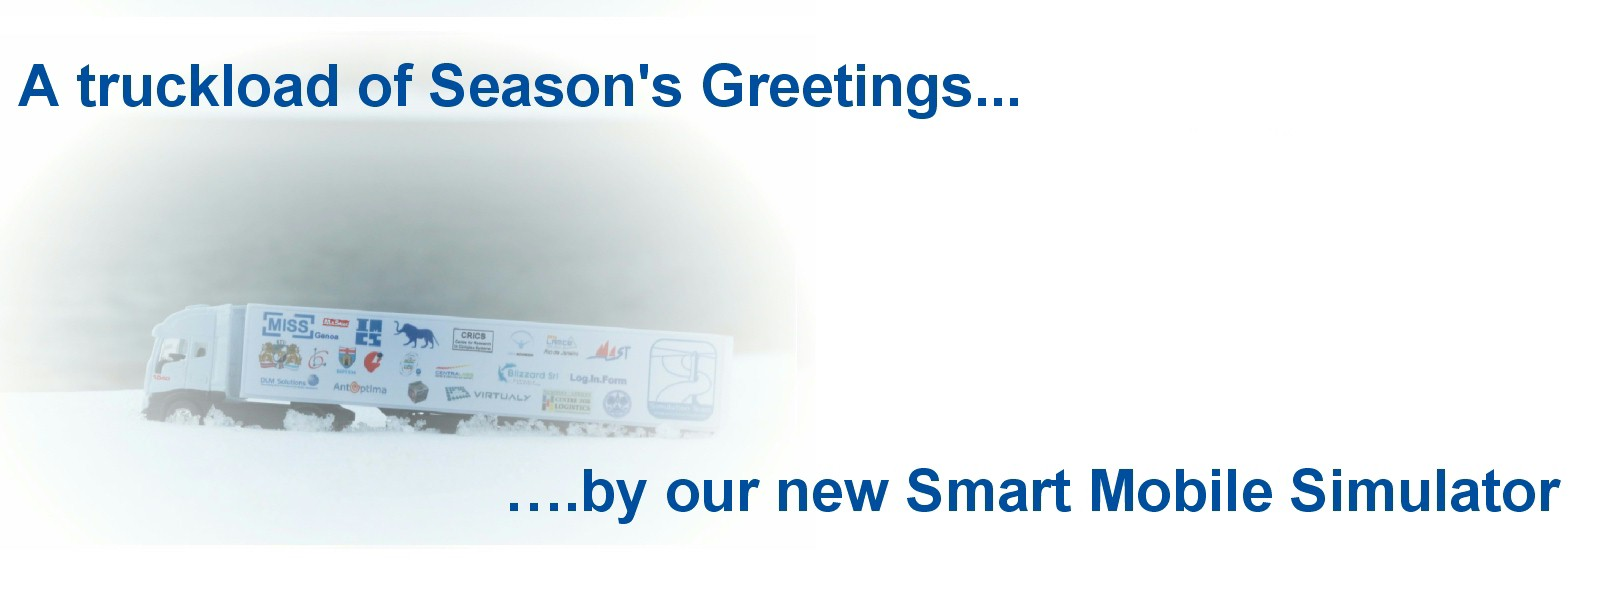 Season's Greetings and Happy 2011